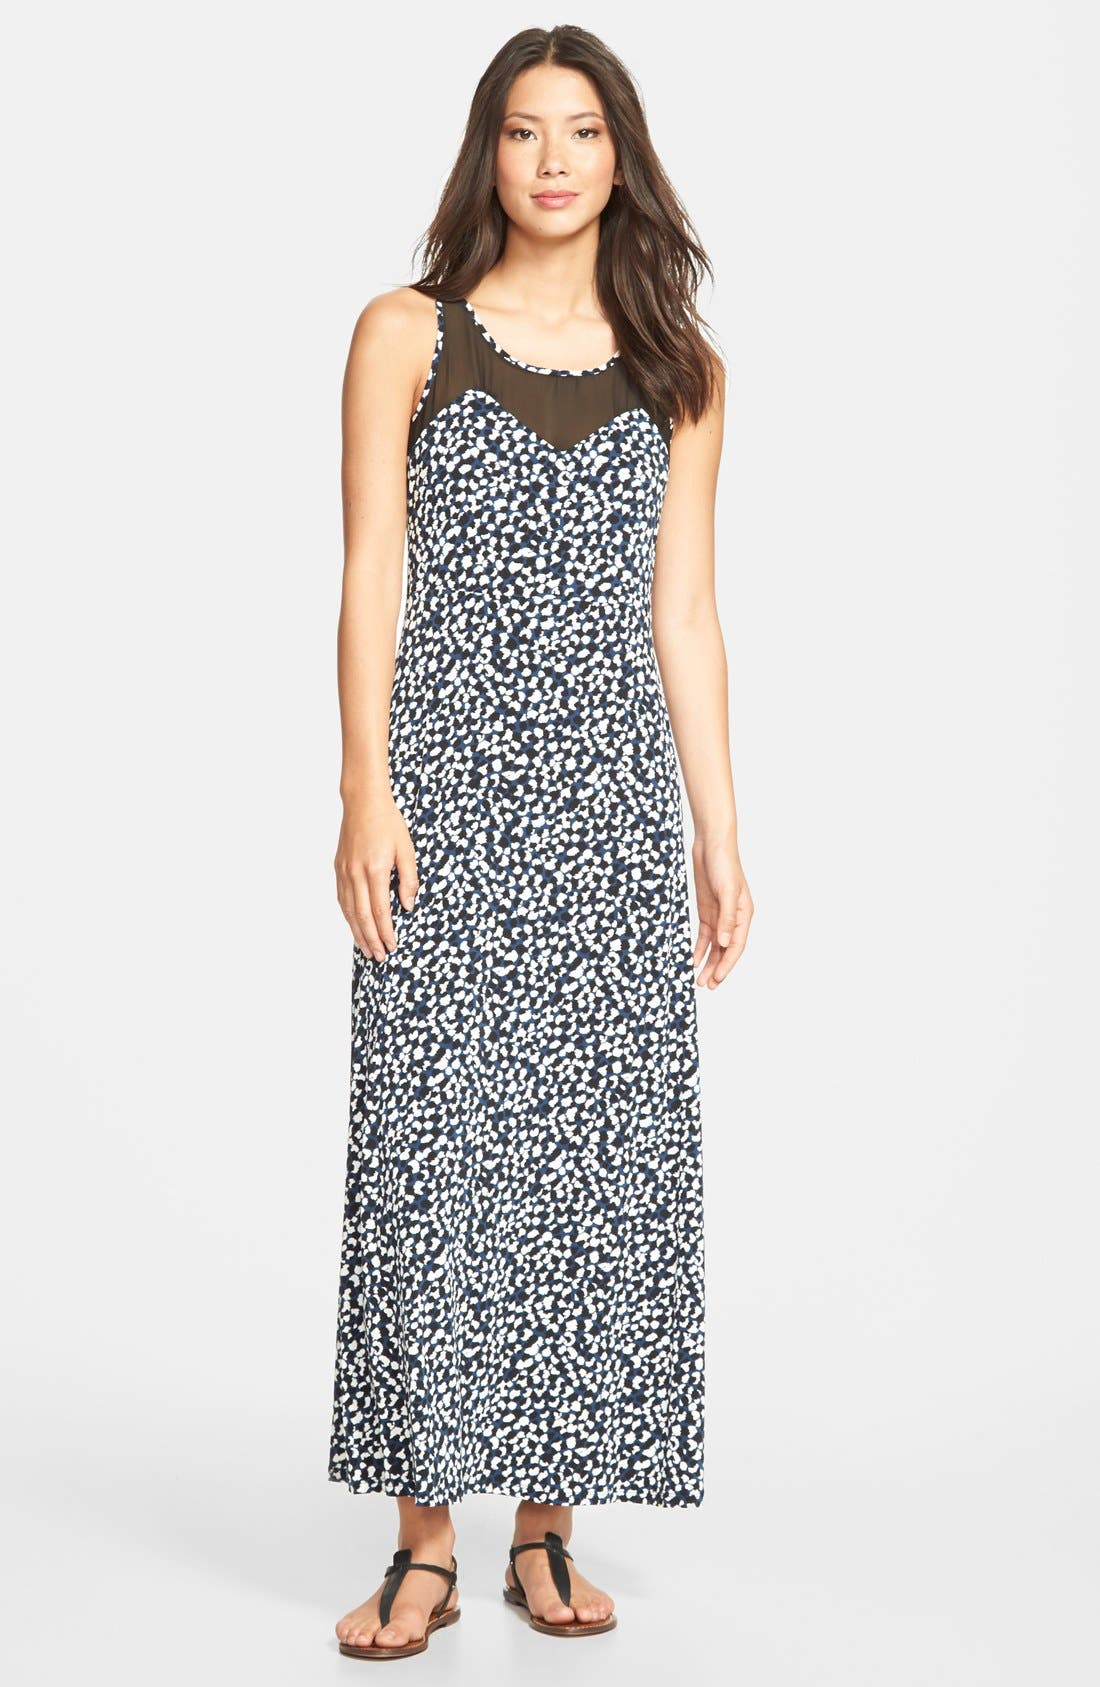 Alternate Image 1 Selected - Vince Camuto 'Doodle' Chiffon Overlay Maxi Dress